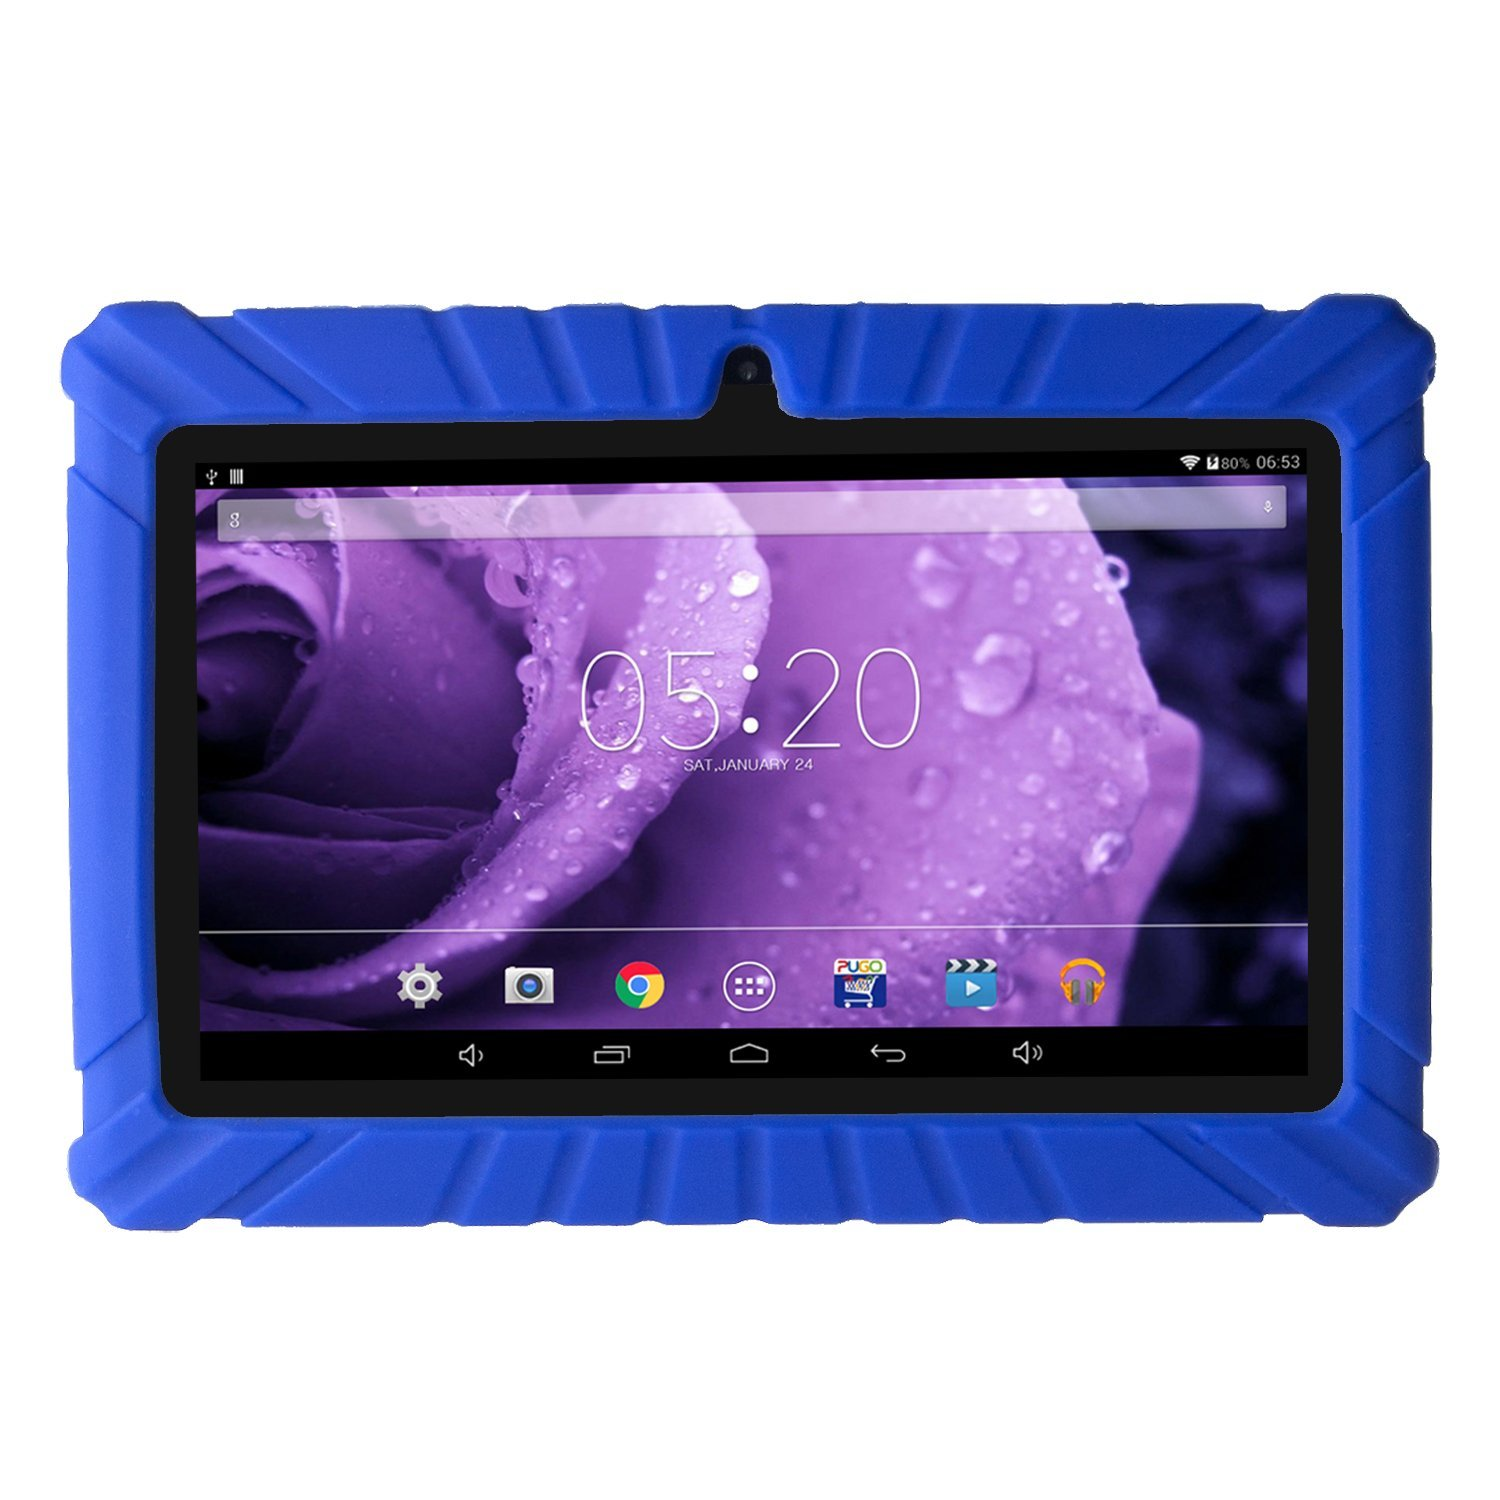 Silicone Rugged Anti Slip Rubber Cover Case For 7 Inch